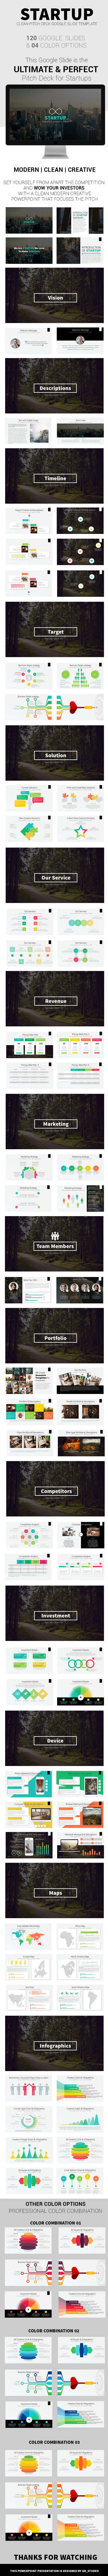 startup - clean pitch deck google slide template | presentation, Presentation templates